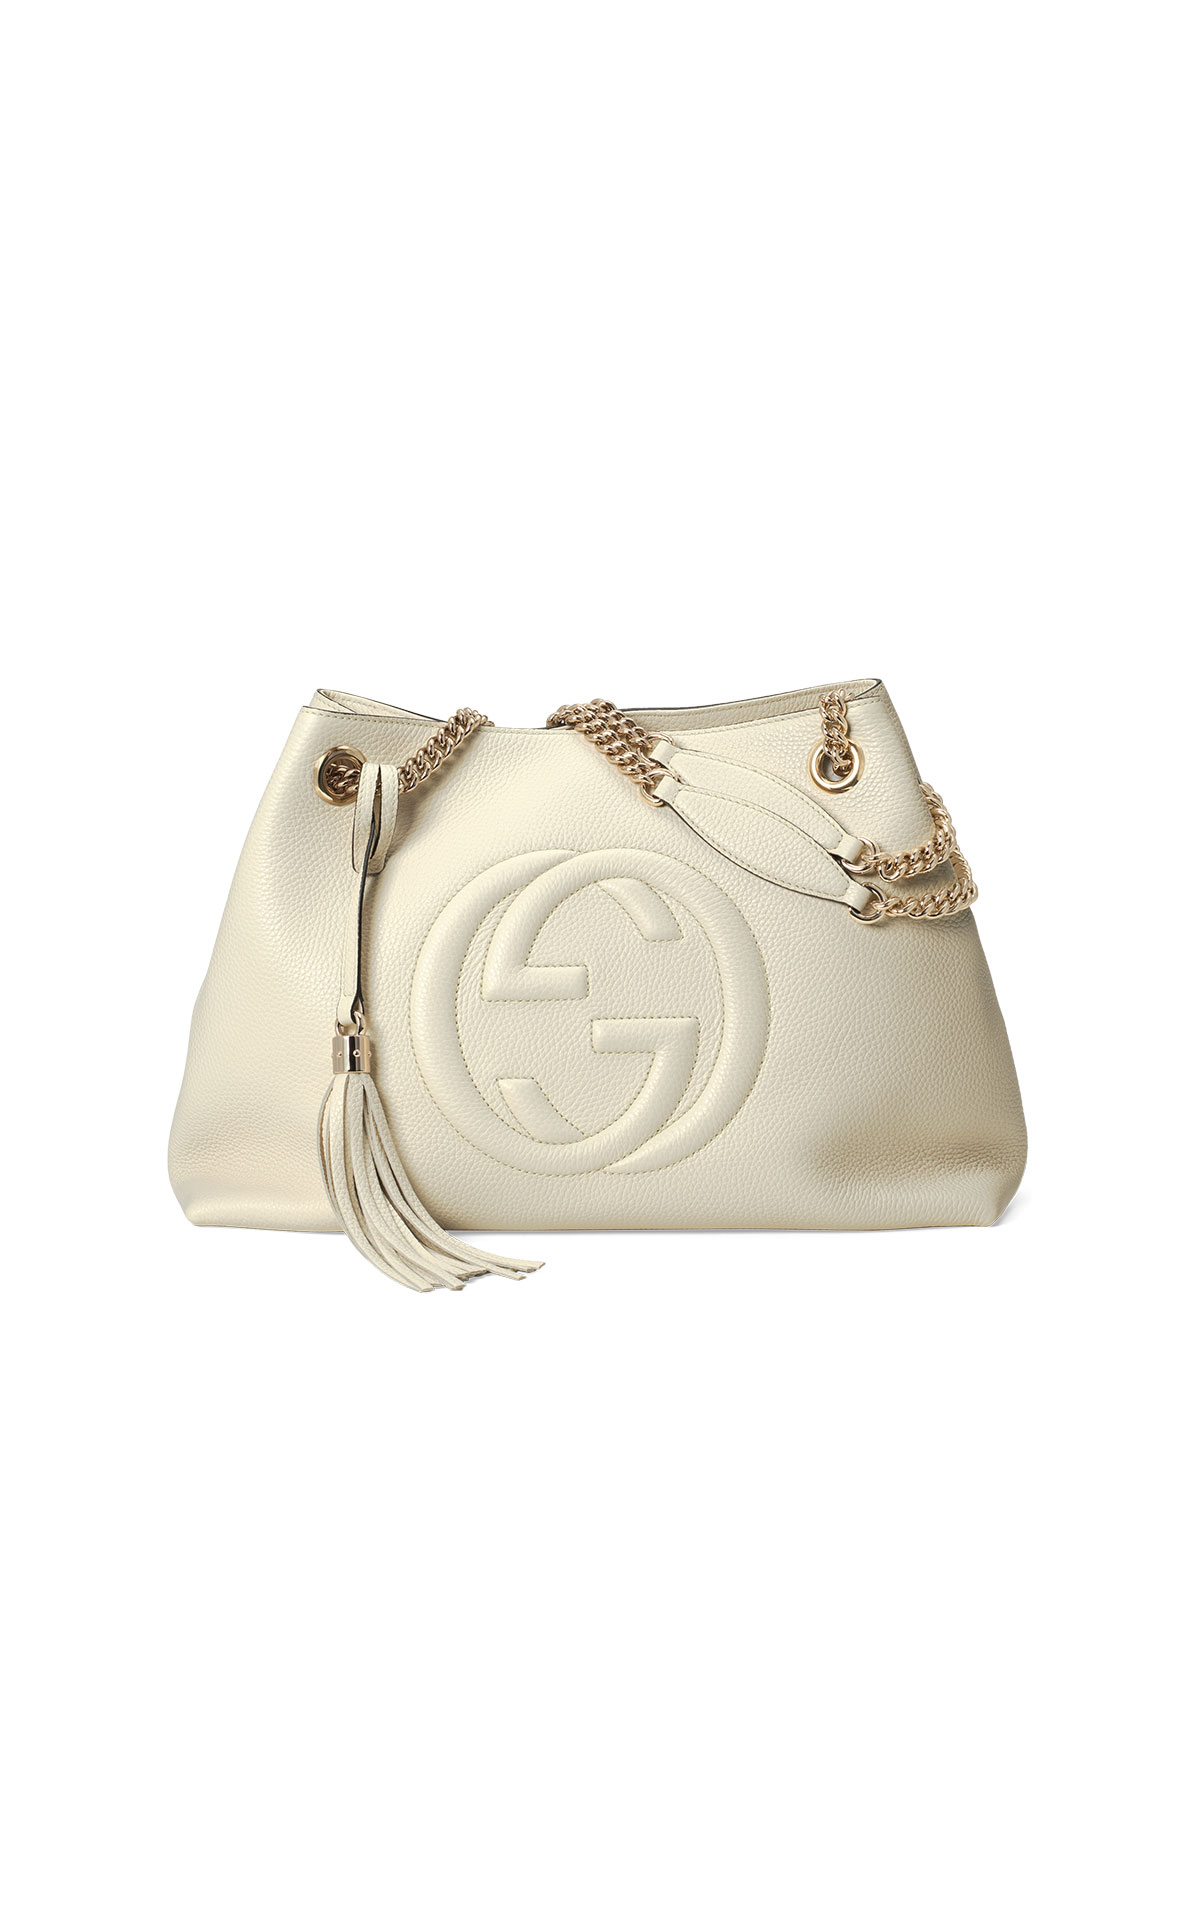 Gucci Double chain tote in ivory leather with embossed Interlocking G and tassel detail from La Roca Village